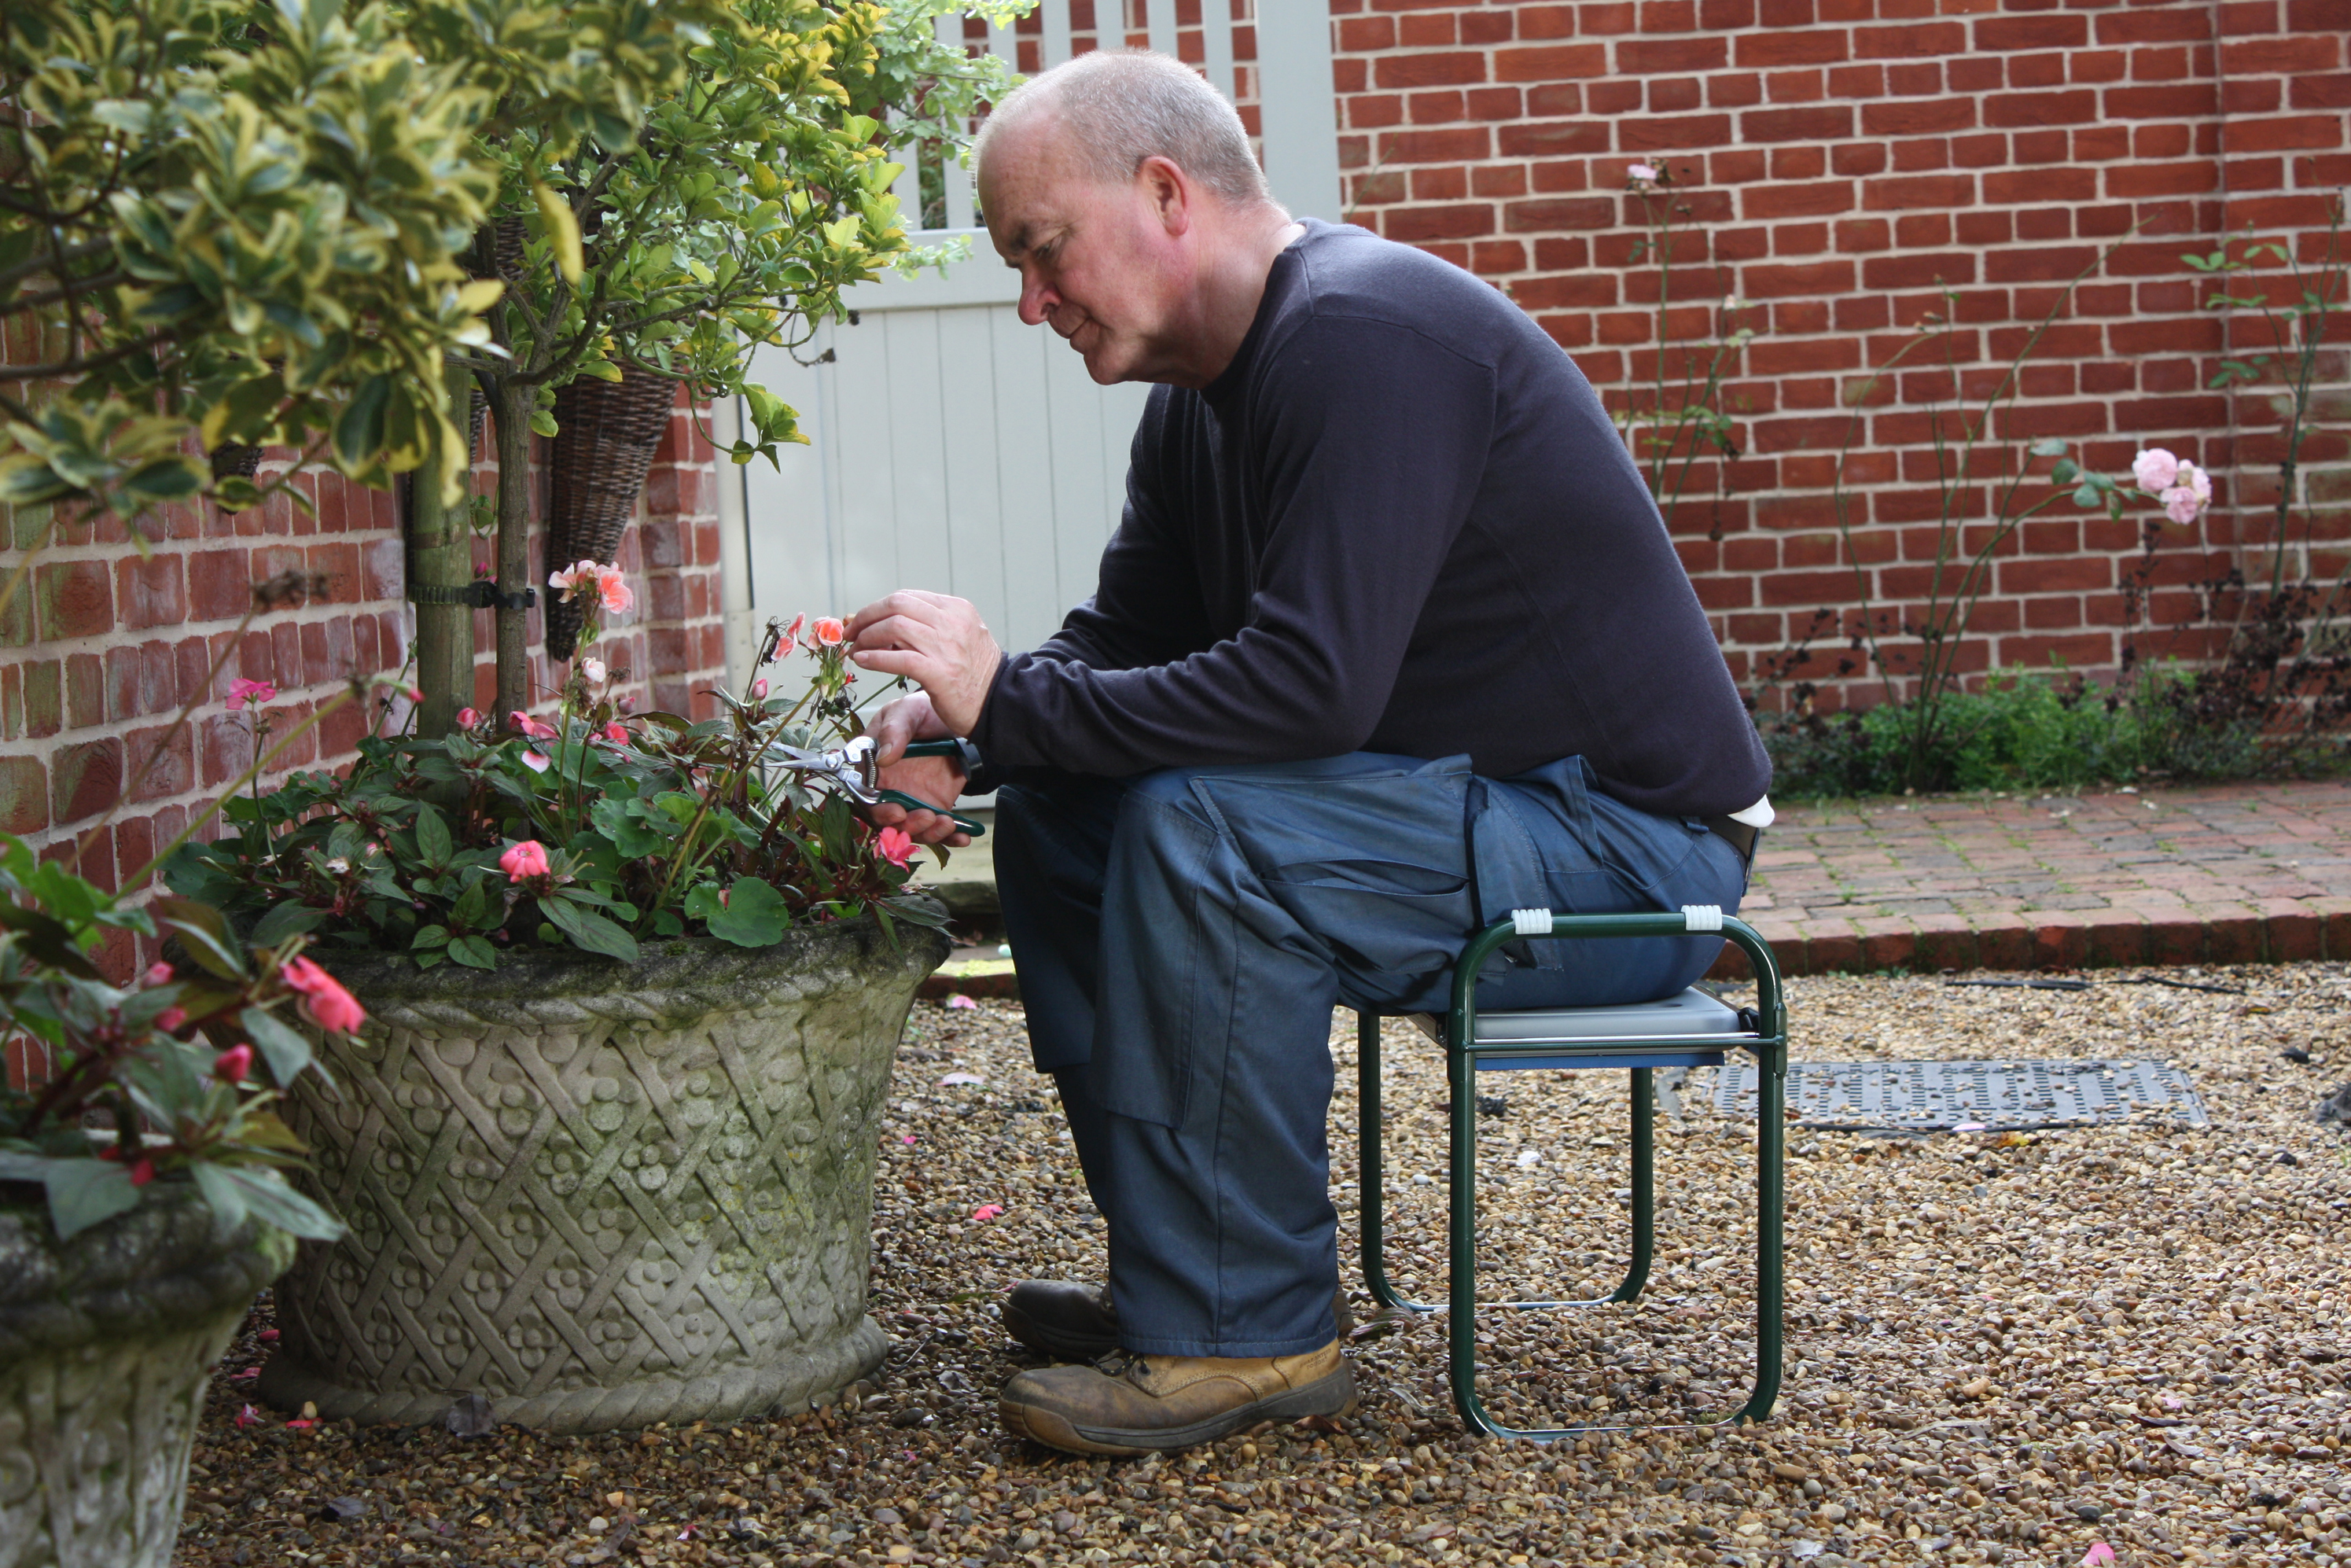 Make gardening more comfortable with this folding kneeler and seat (Harrod Horticultural/PA)